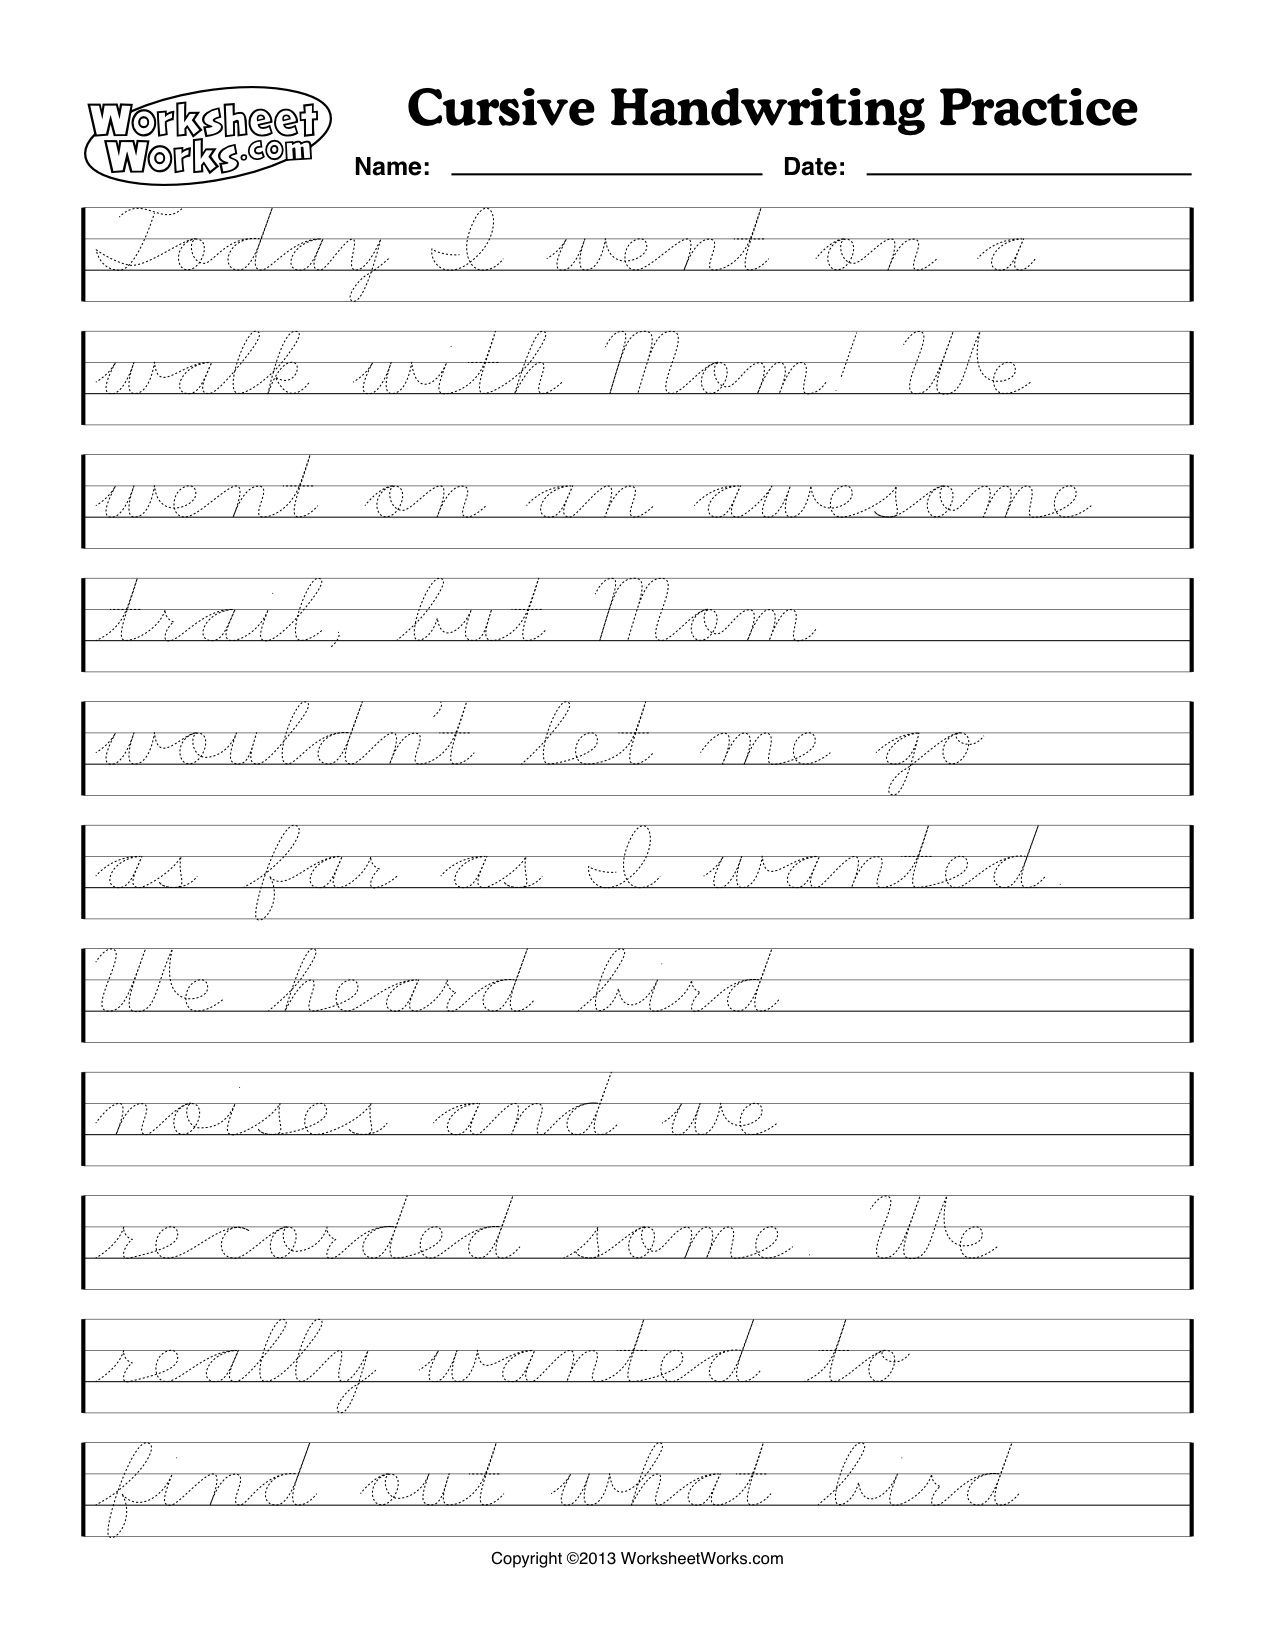 Worksheets Printable Handwriting Worksheet Generator cursive handwriting worksheets writing worksheet one word english pic 18